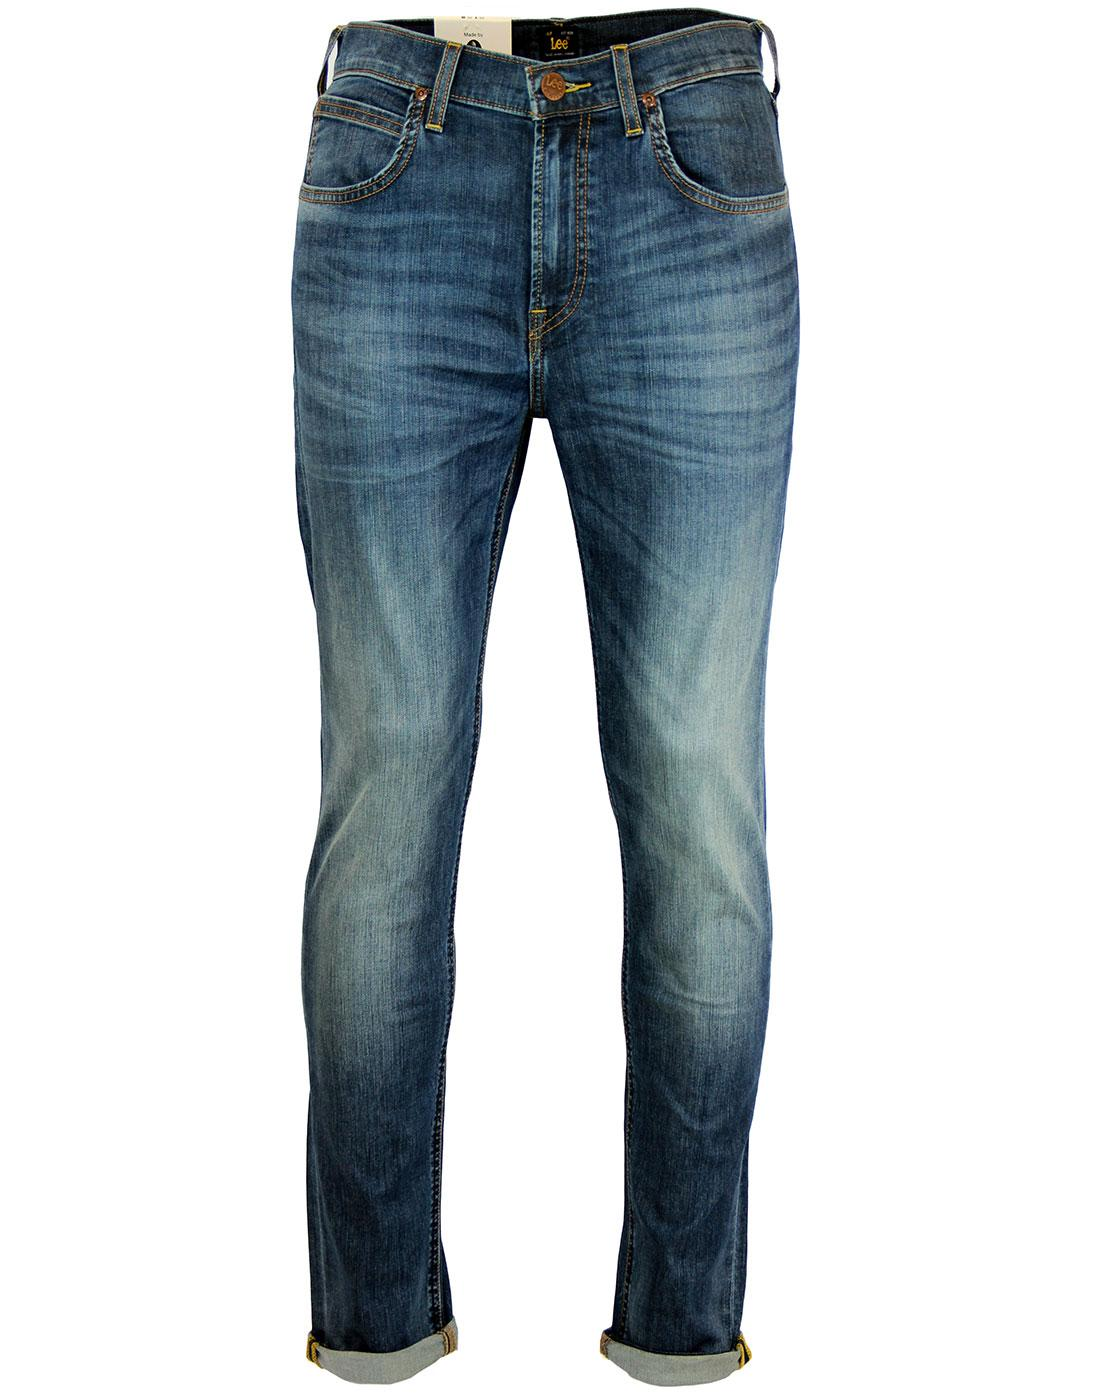 Arvin LEE Retro Blue Rhythm Regular Tapered Jeans